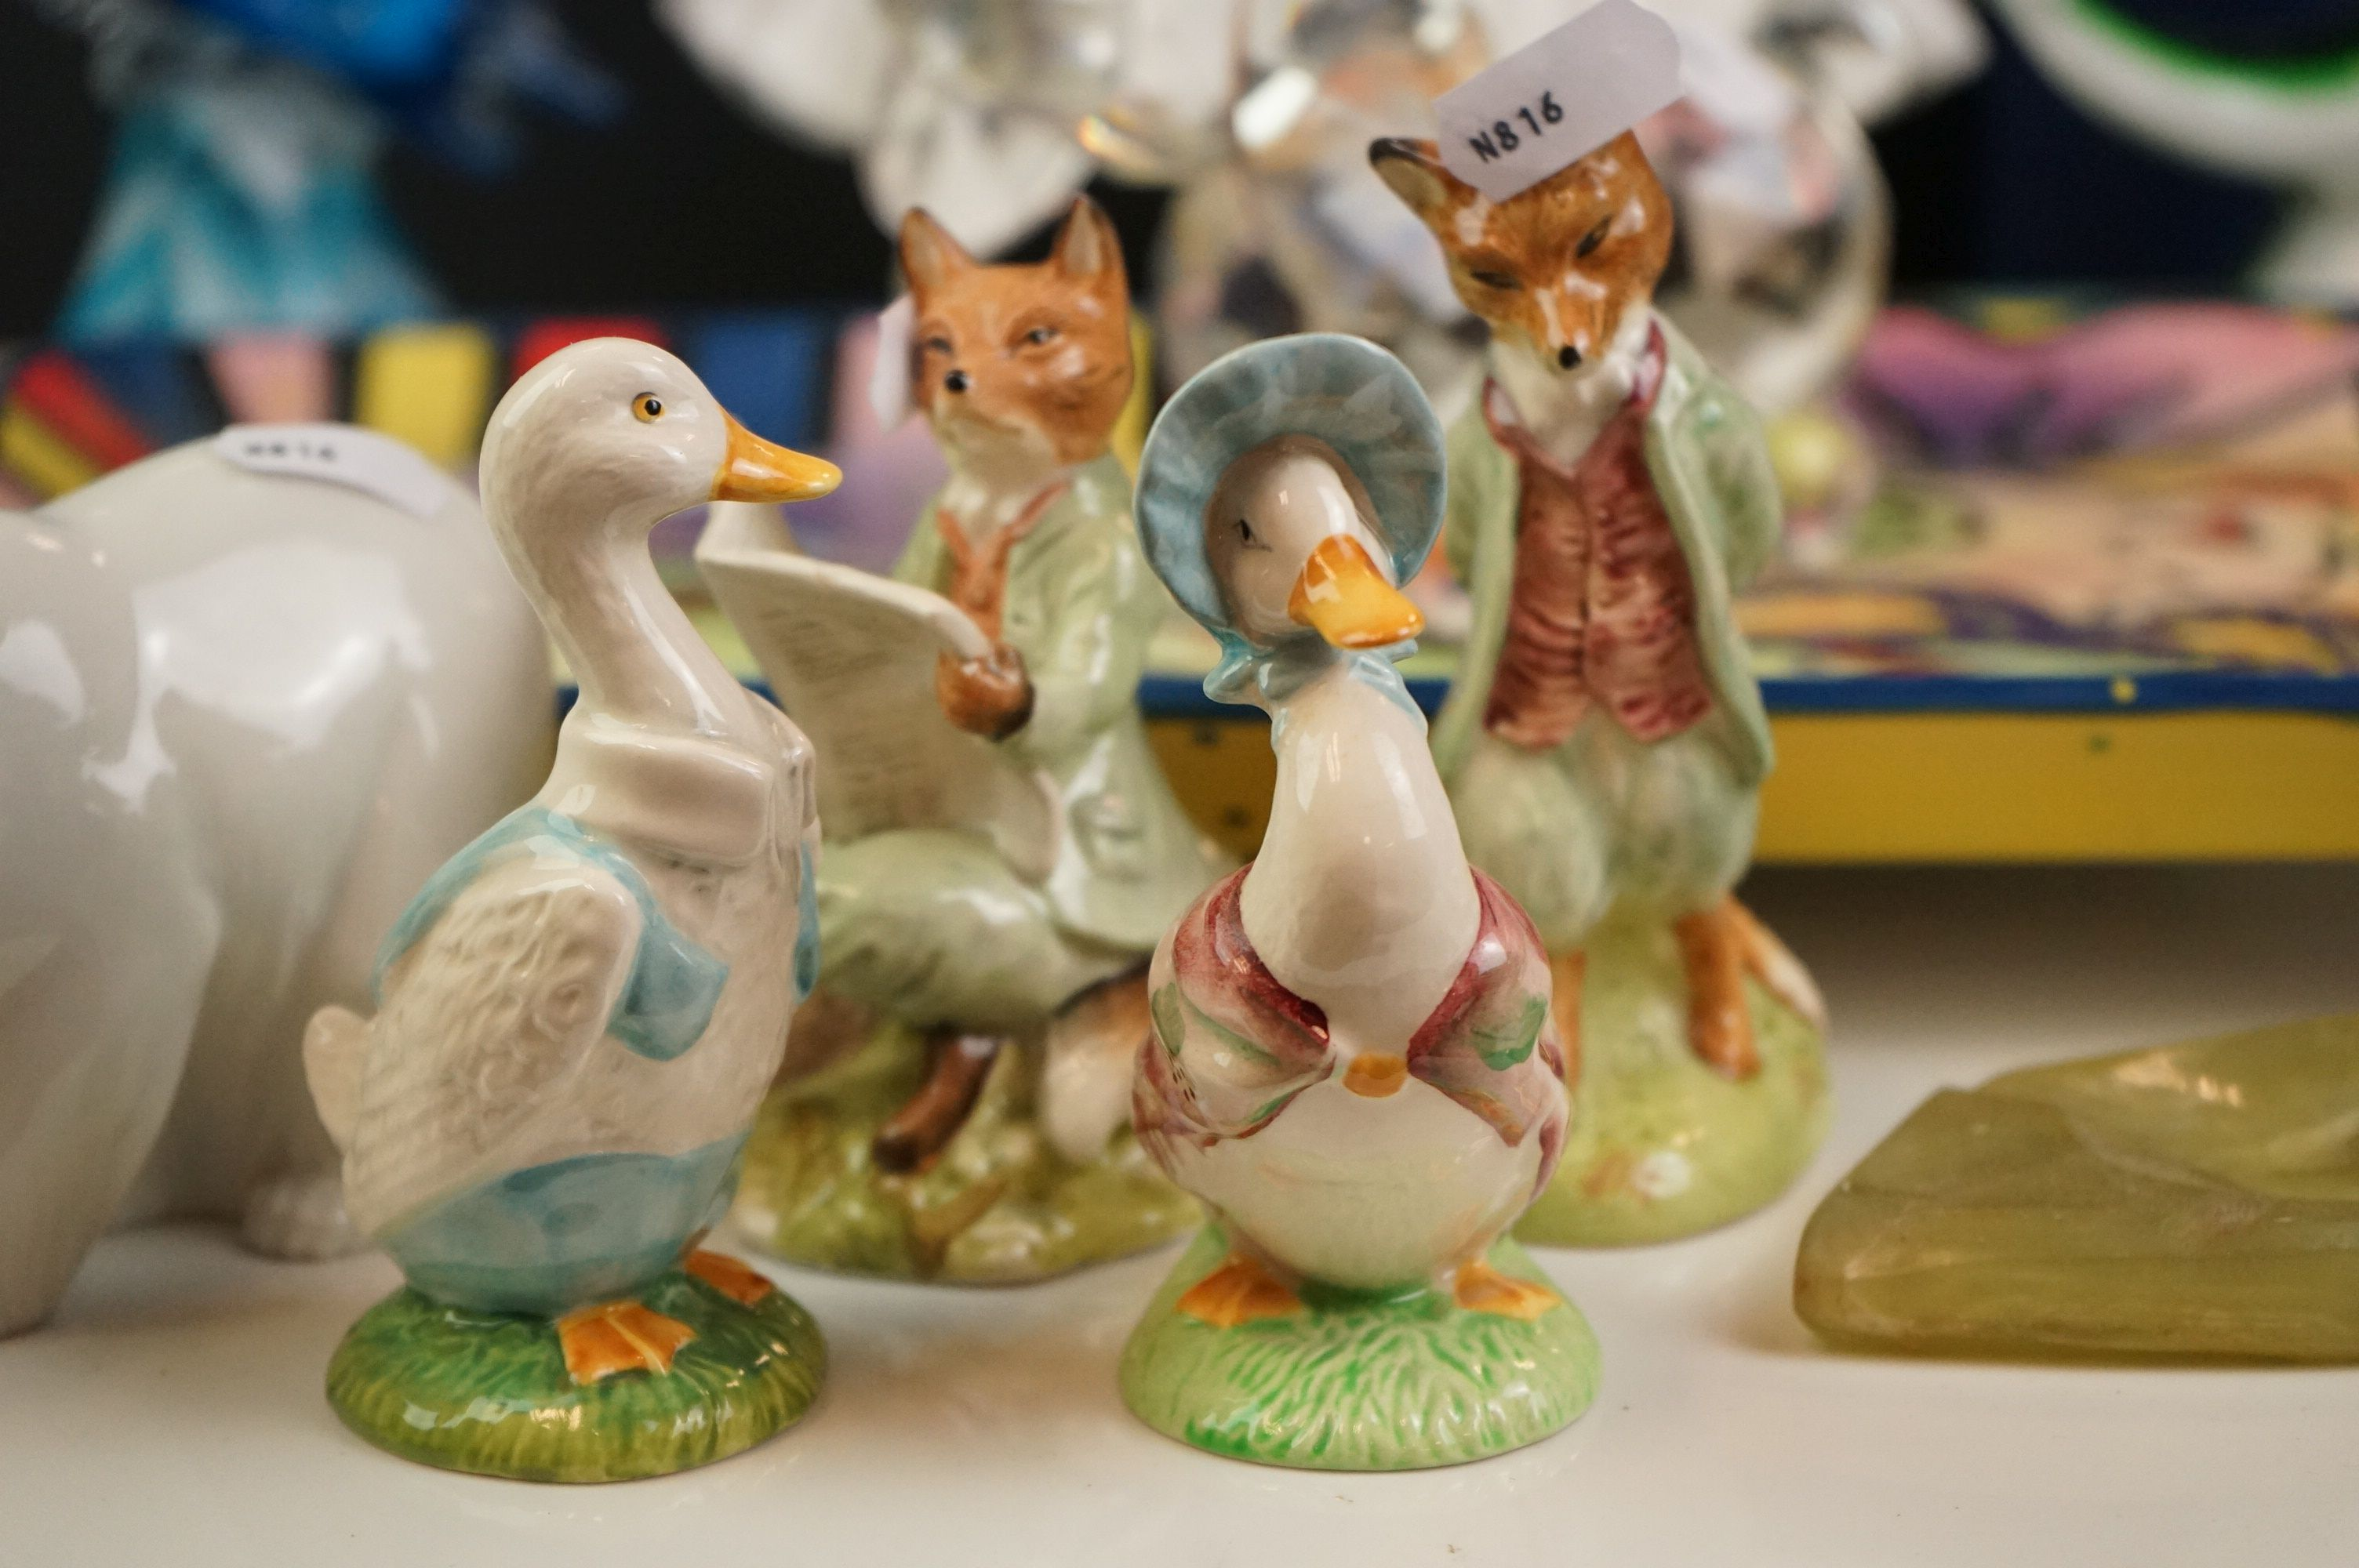 Collection of Ceramics and Glass including Four Beatrix Potter Figures, Aynsley Mr Bunny, Lladro - Image 3 of 11